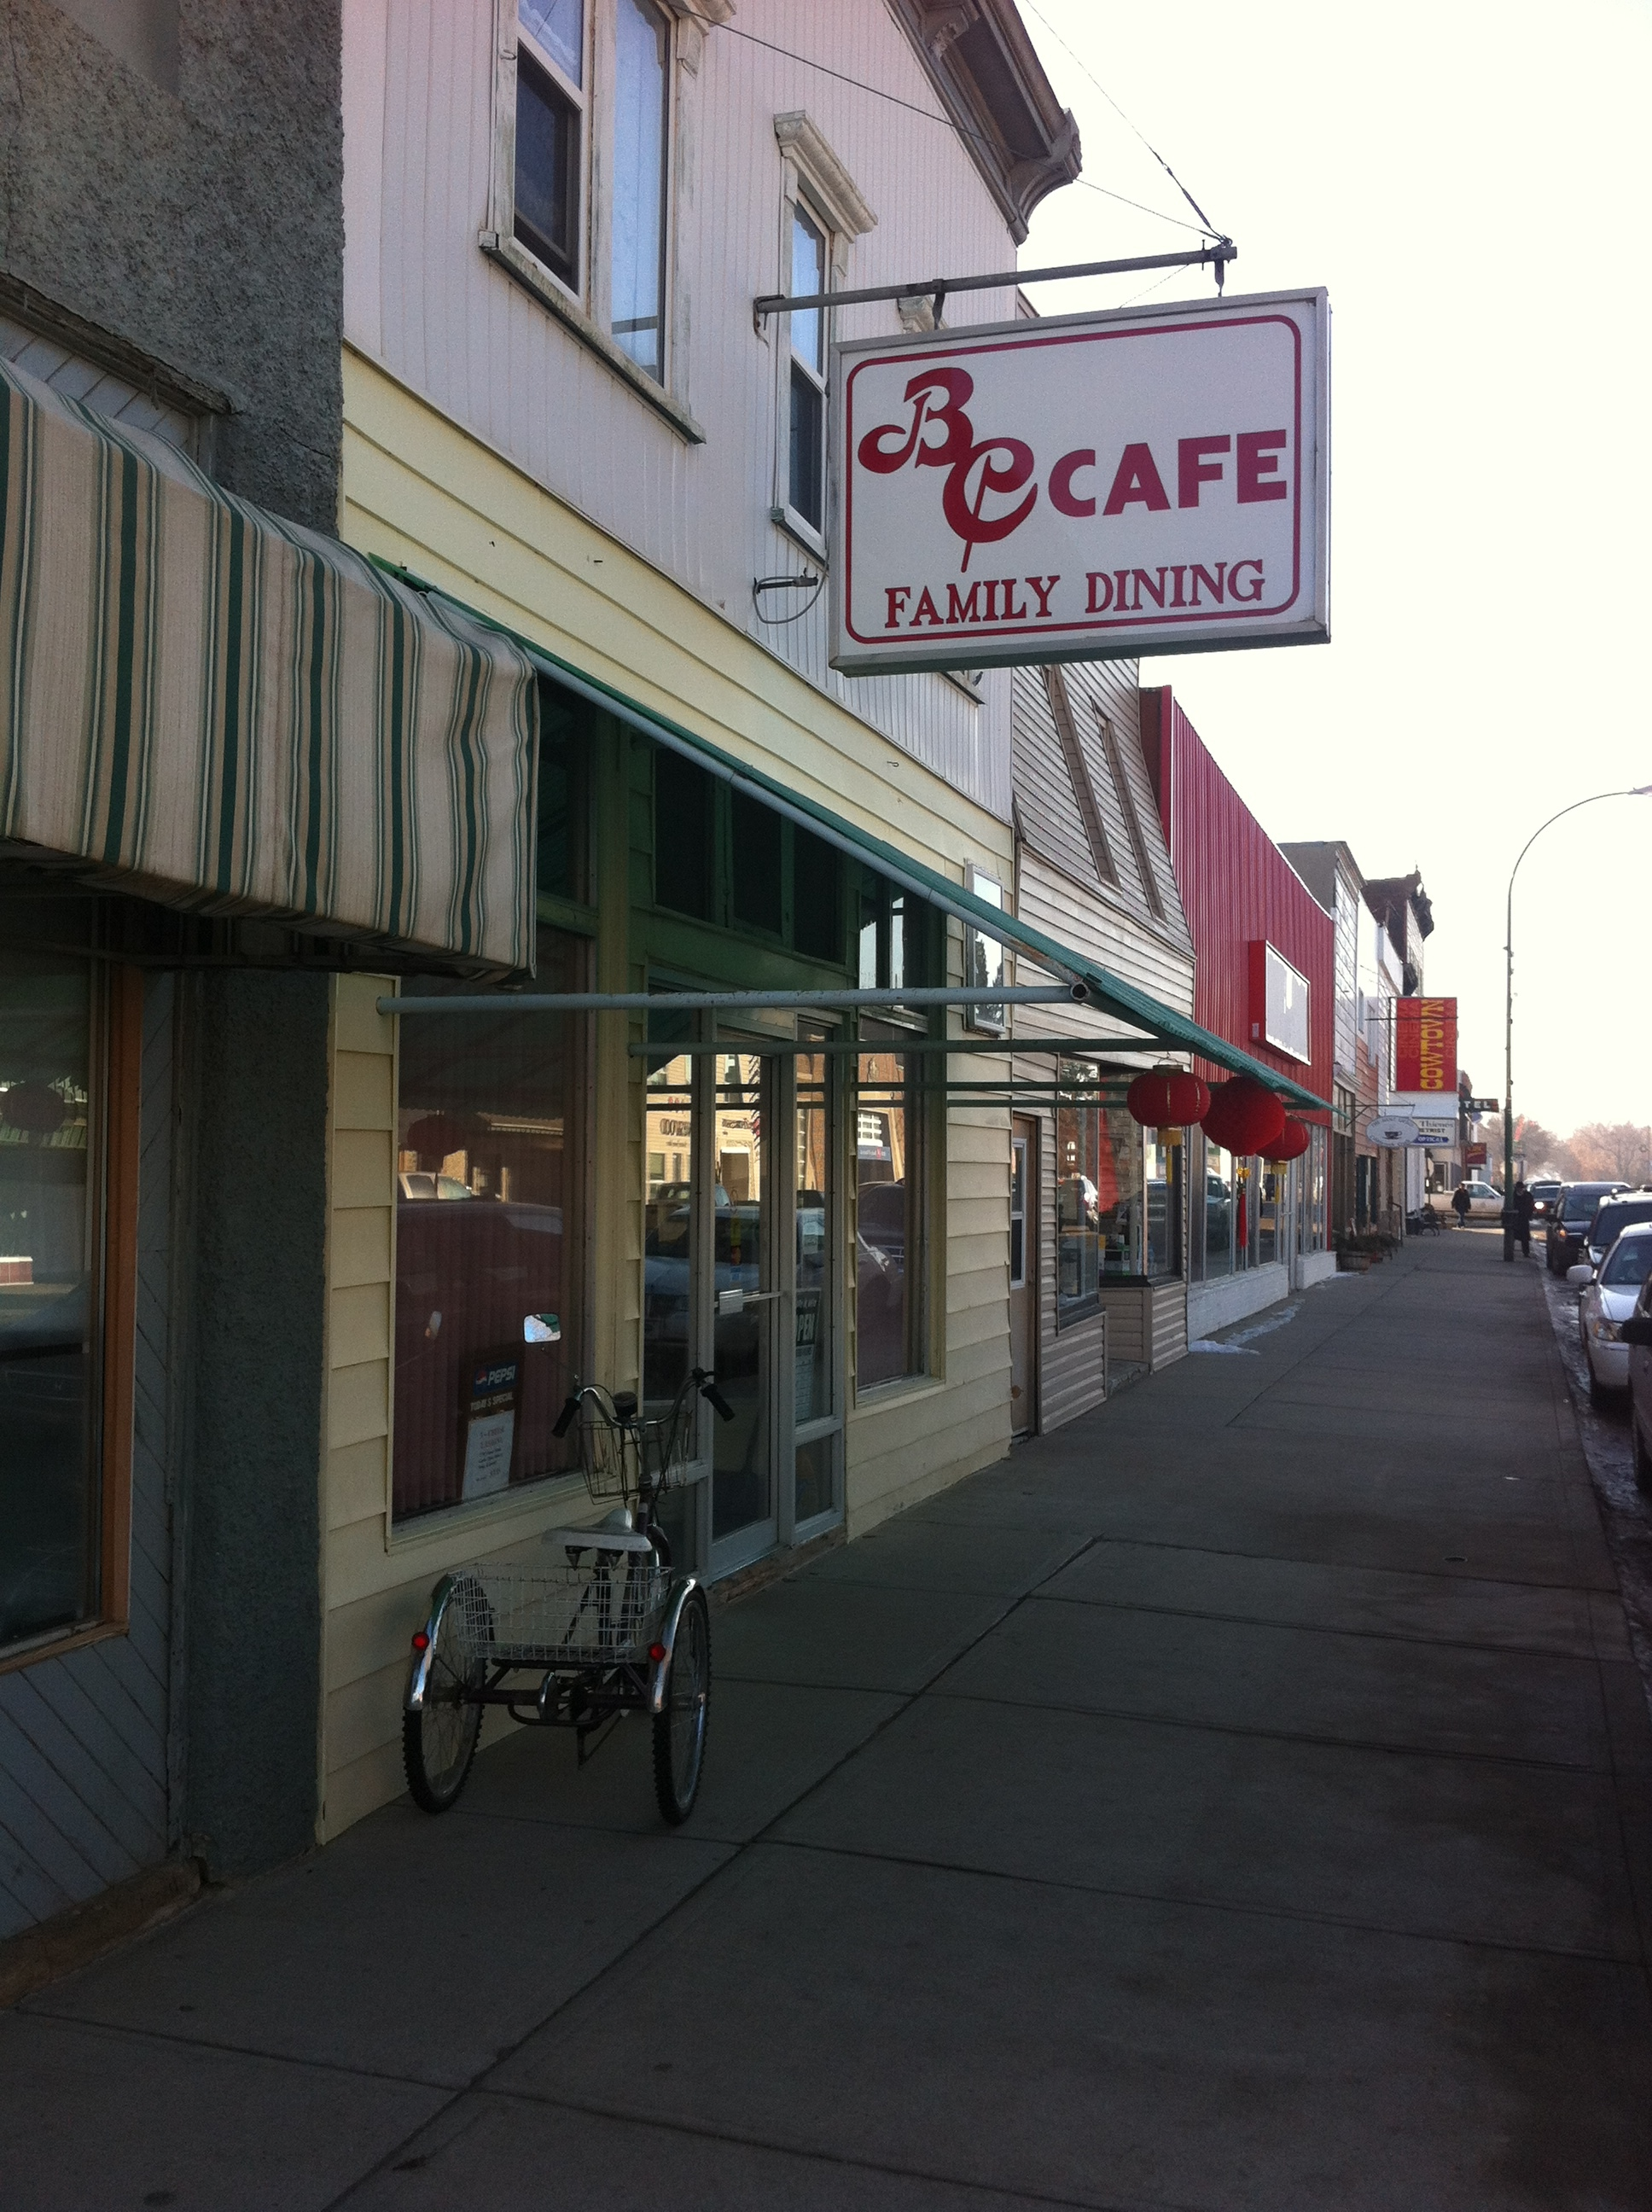 BC Cafe is the classic prairie restaurant - Chinese Western menu.  Definitely worth a try - grilled cheese and soup recommended.